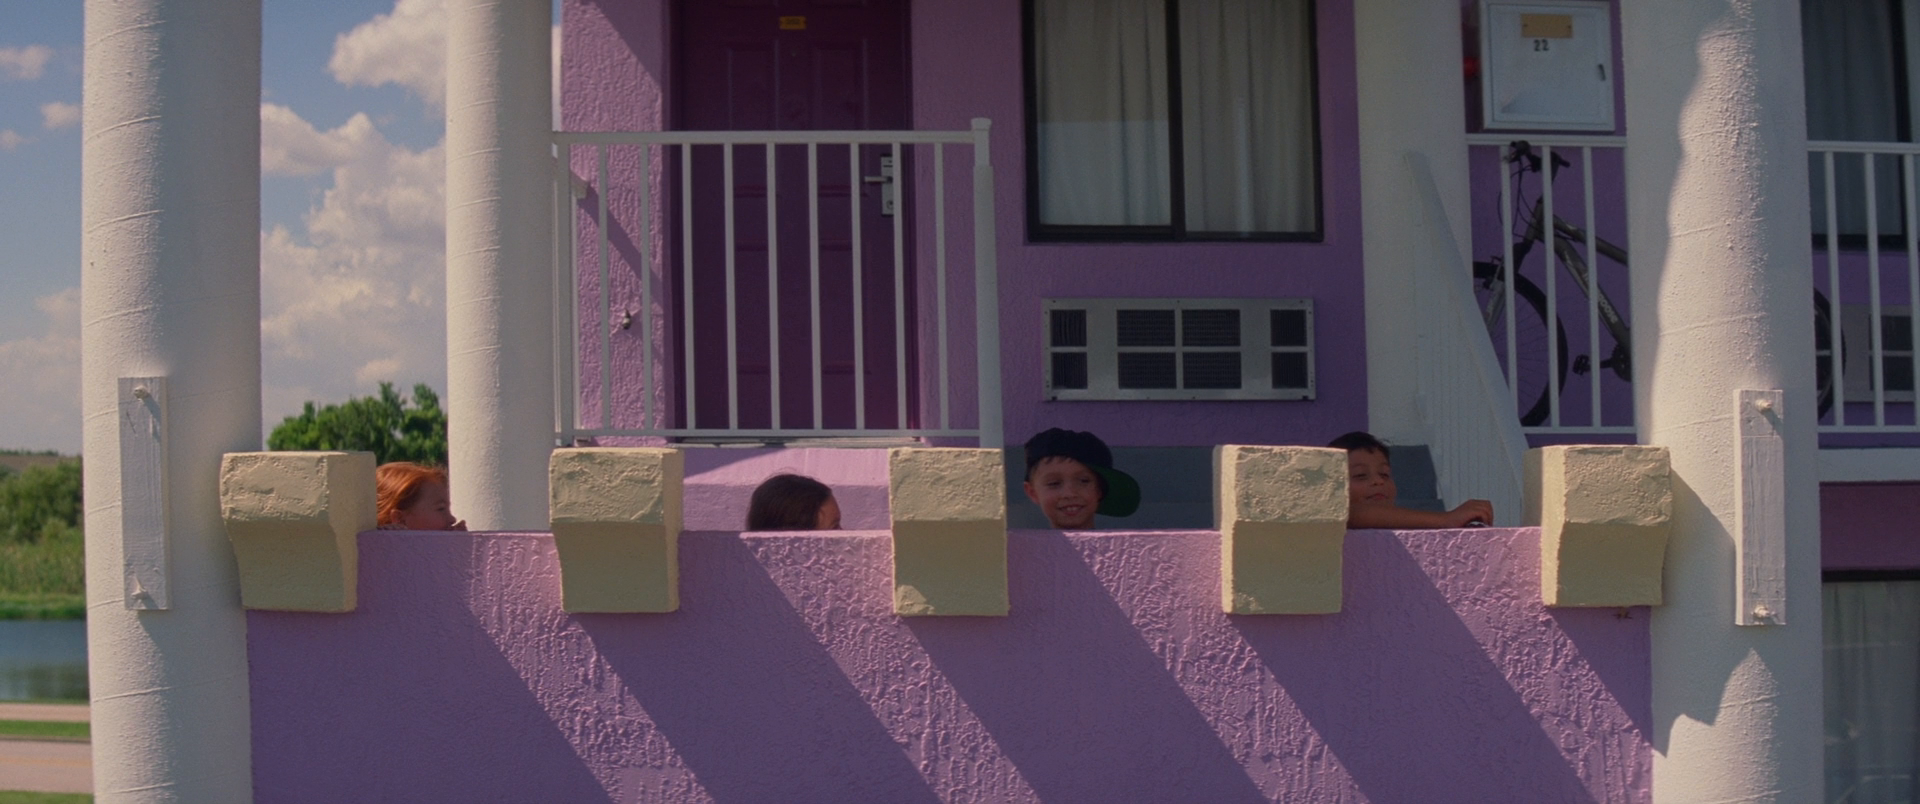 The Florida Project 2017 BluRay 1080p DTS-HD MA 5.1-MTeam